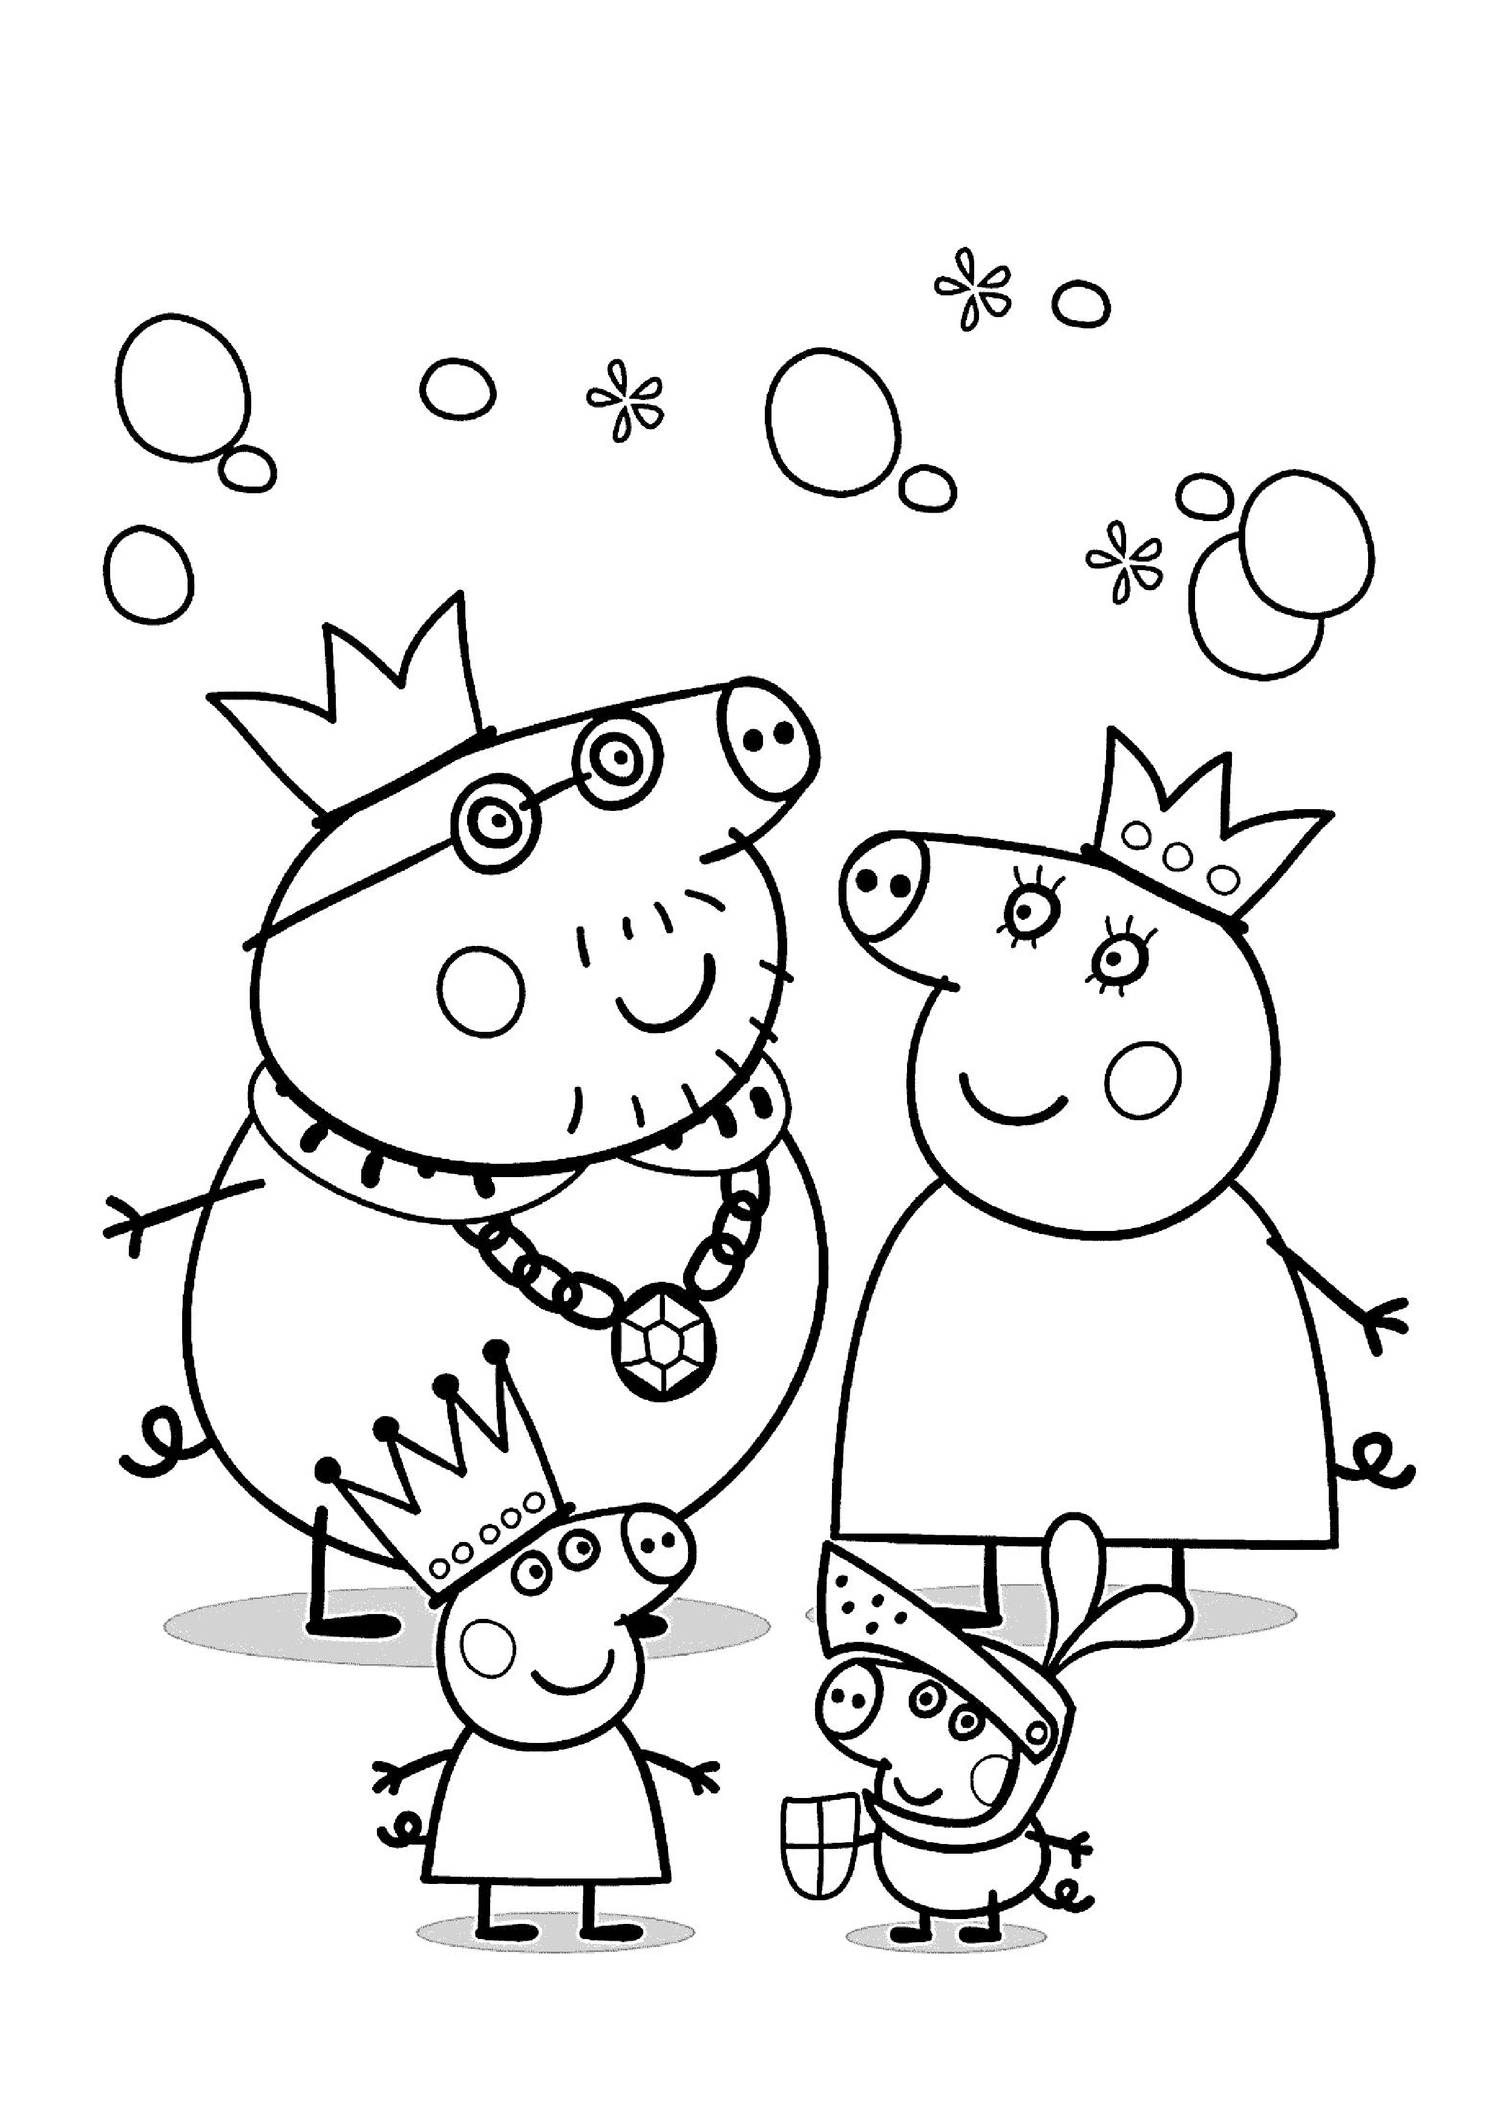 Pepa Pig Coloring Pages Pdf Docdroid